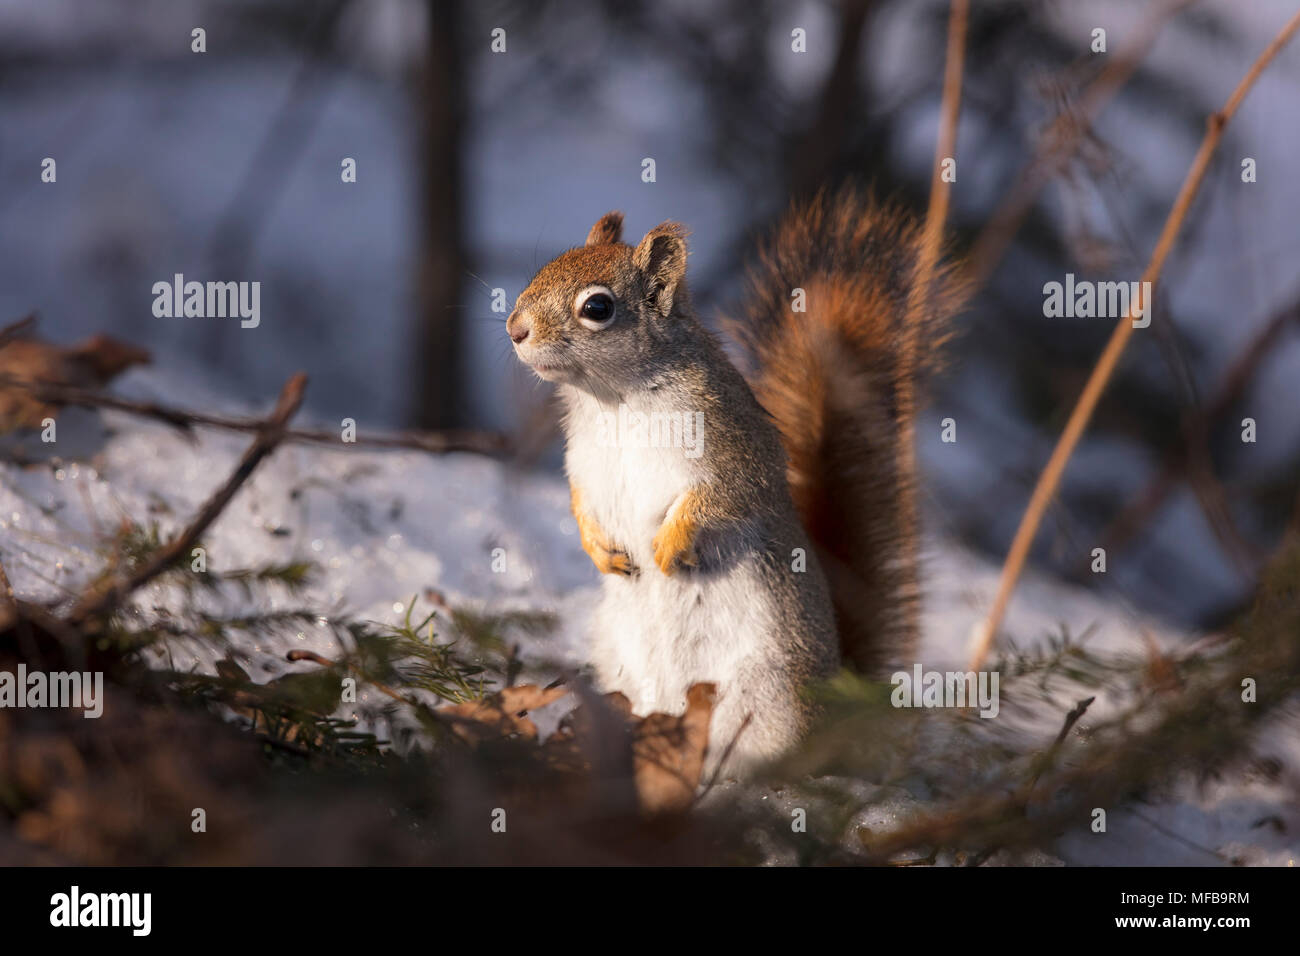 MAYNOOTH, ONTARIO, CANADA - April 23, 2018: A red squirrel (Tamiasciurus hudsonicus), part of the Sciuridae family forages for food.  ( Ryan Carter ) Stock Photo